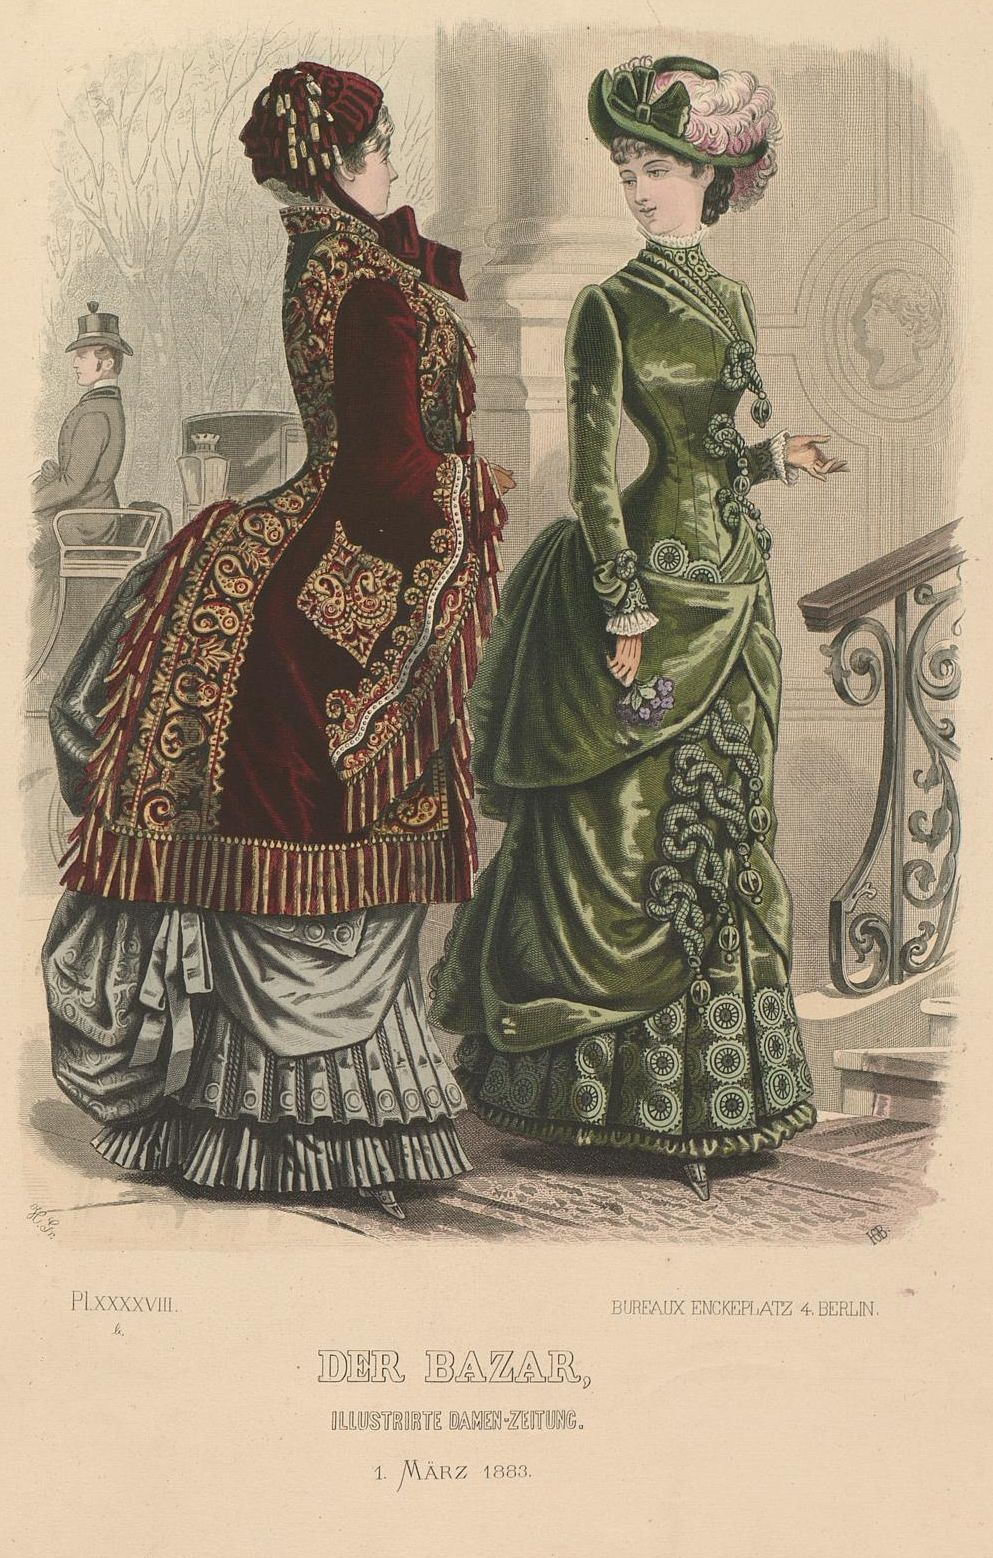 Der Bazar 1883 - check out the details on the green dress ...